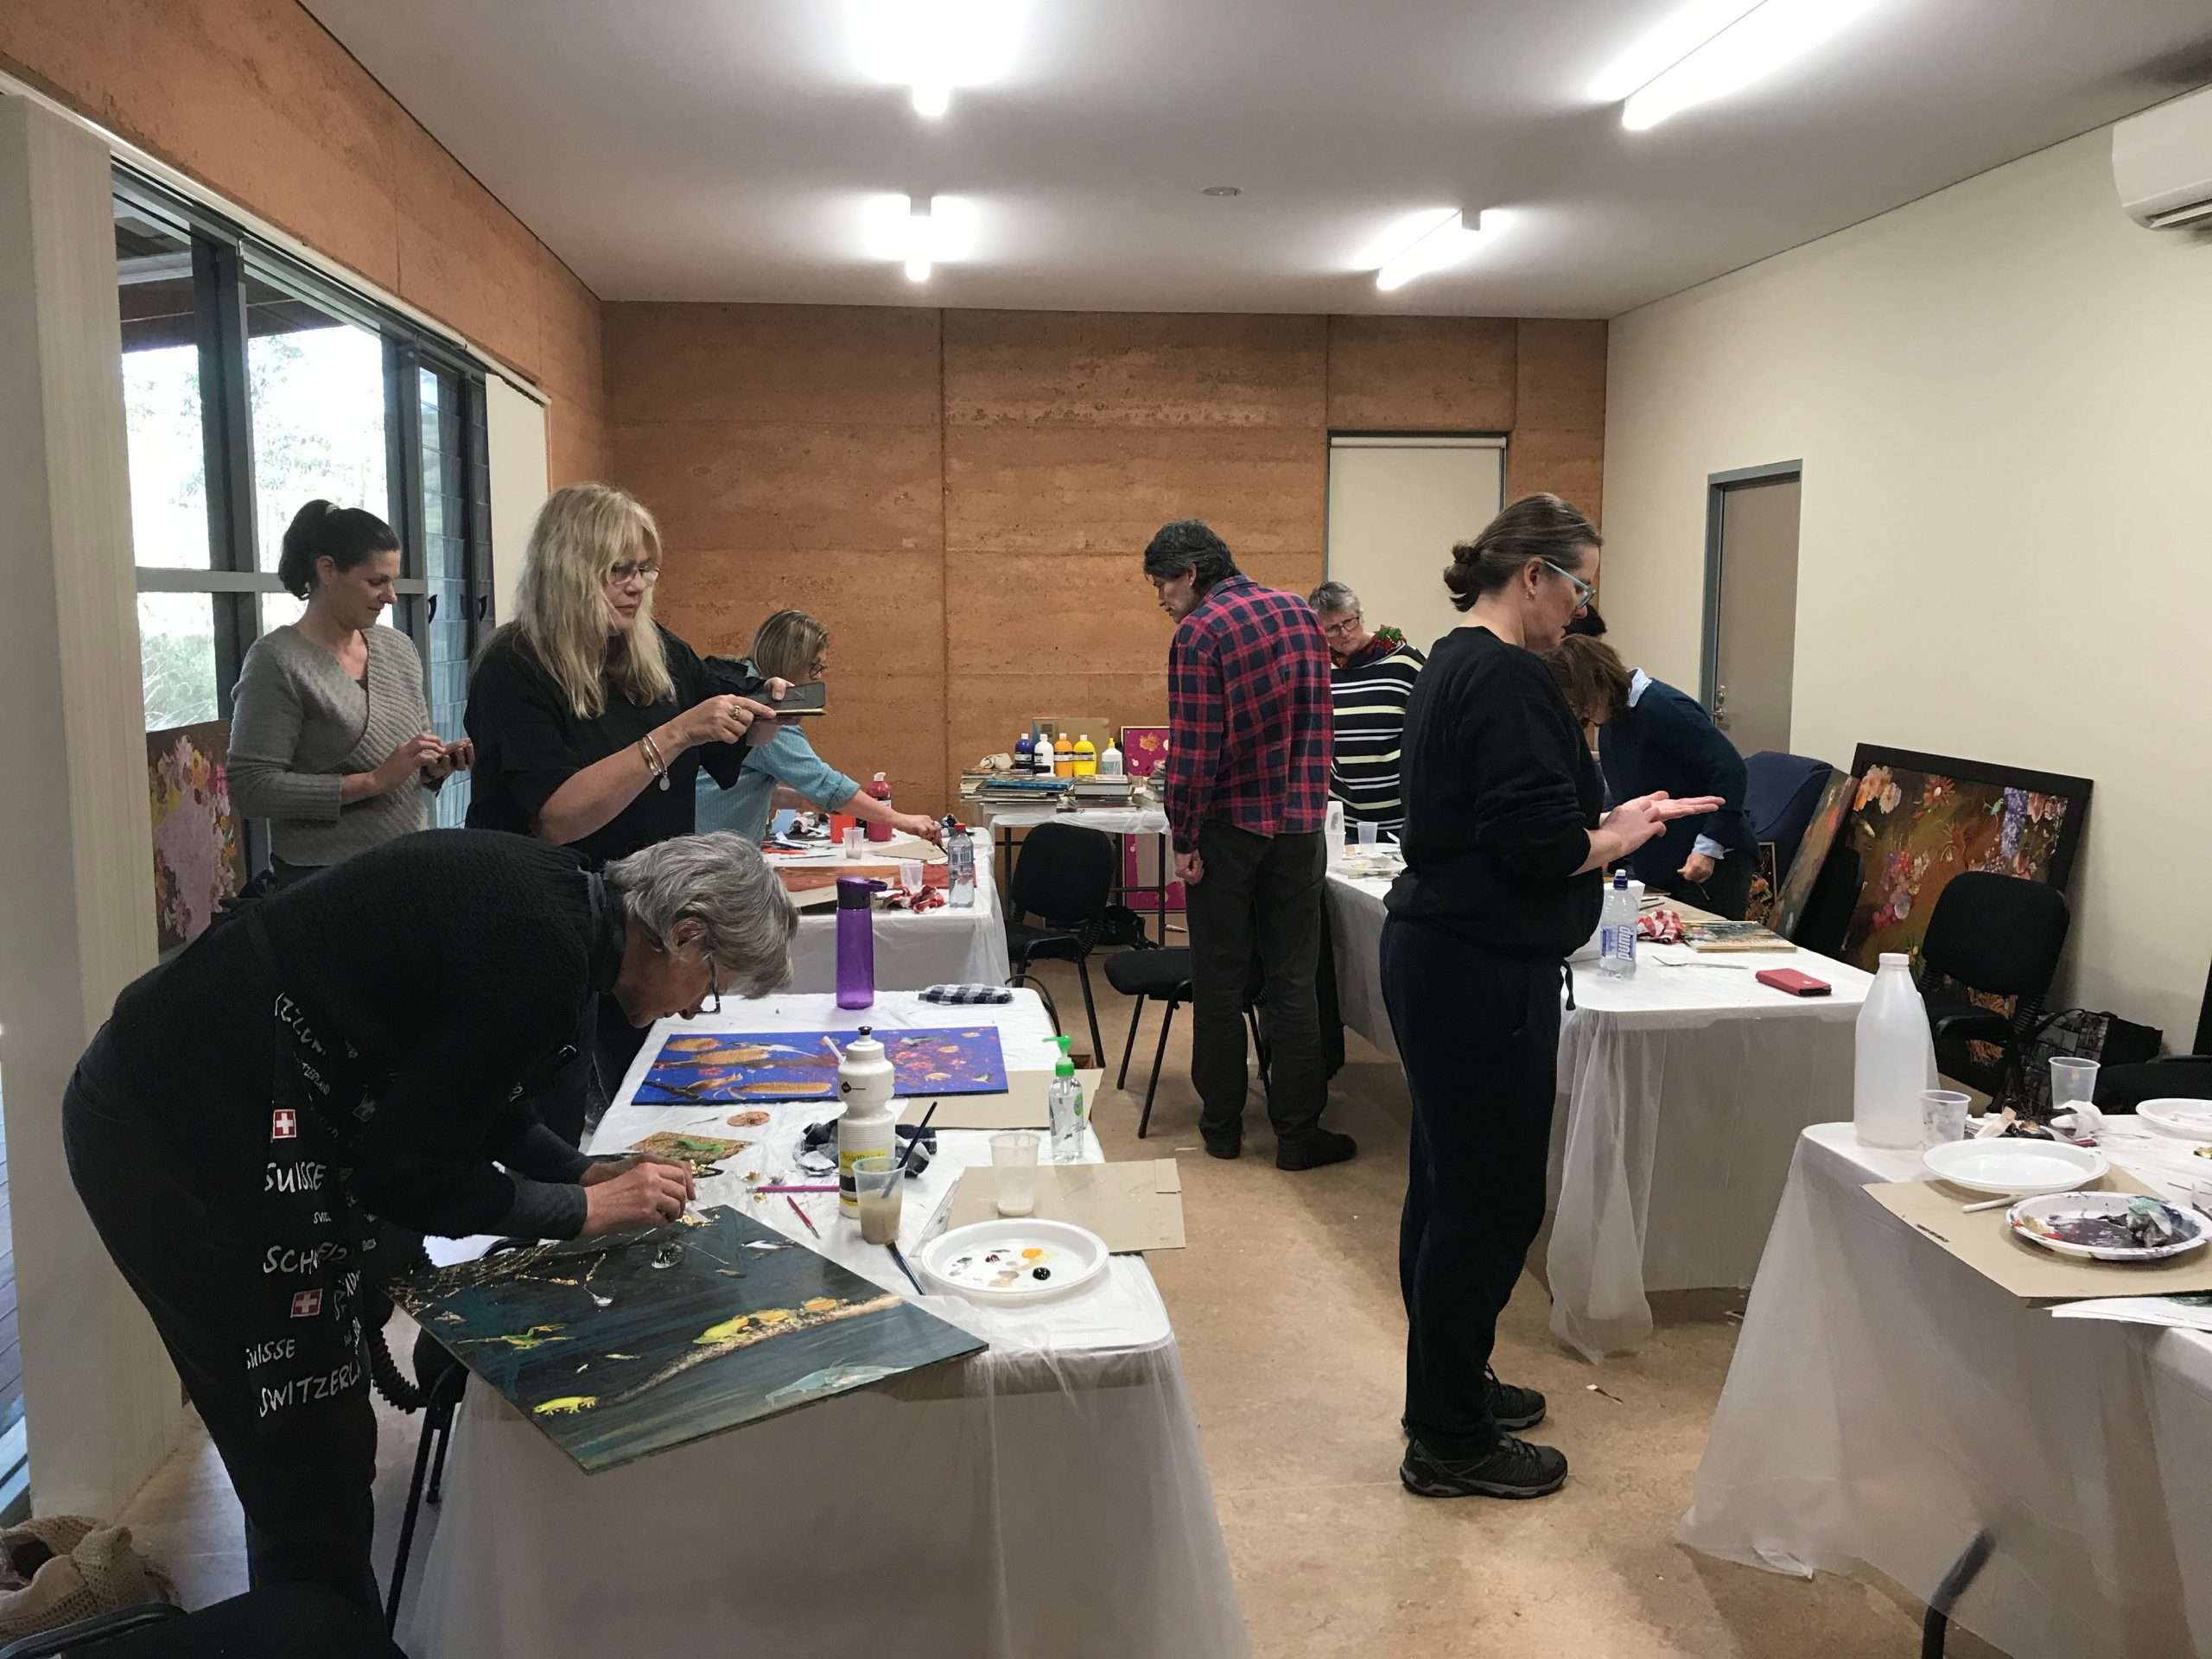 The Northcliffe Meeting Space, located within the Northcliffe Information & Visitor Centre is an ideal venue for Southern Forest Arts workshops